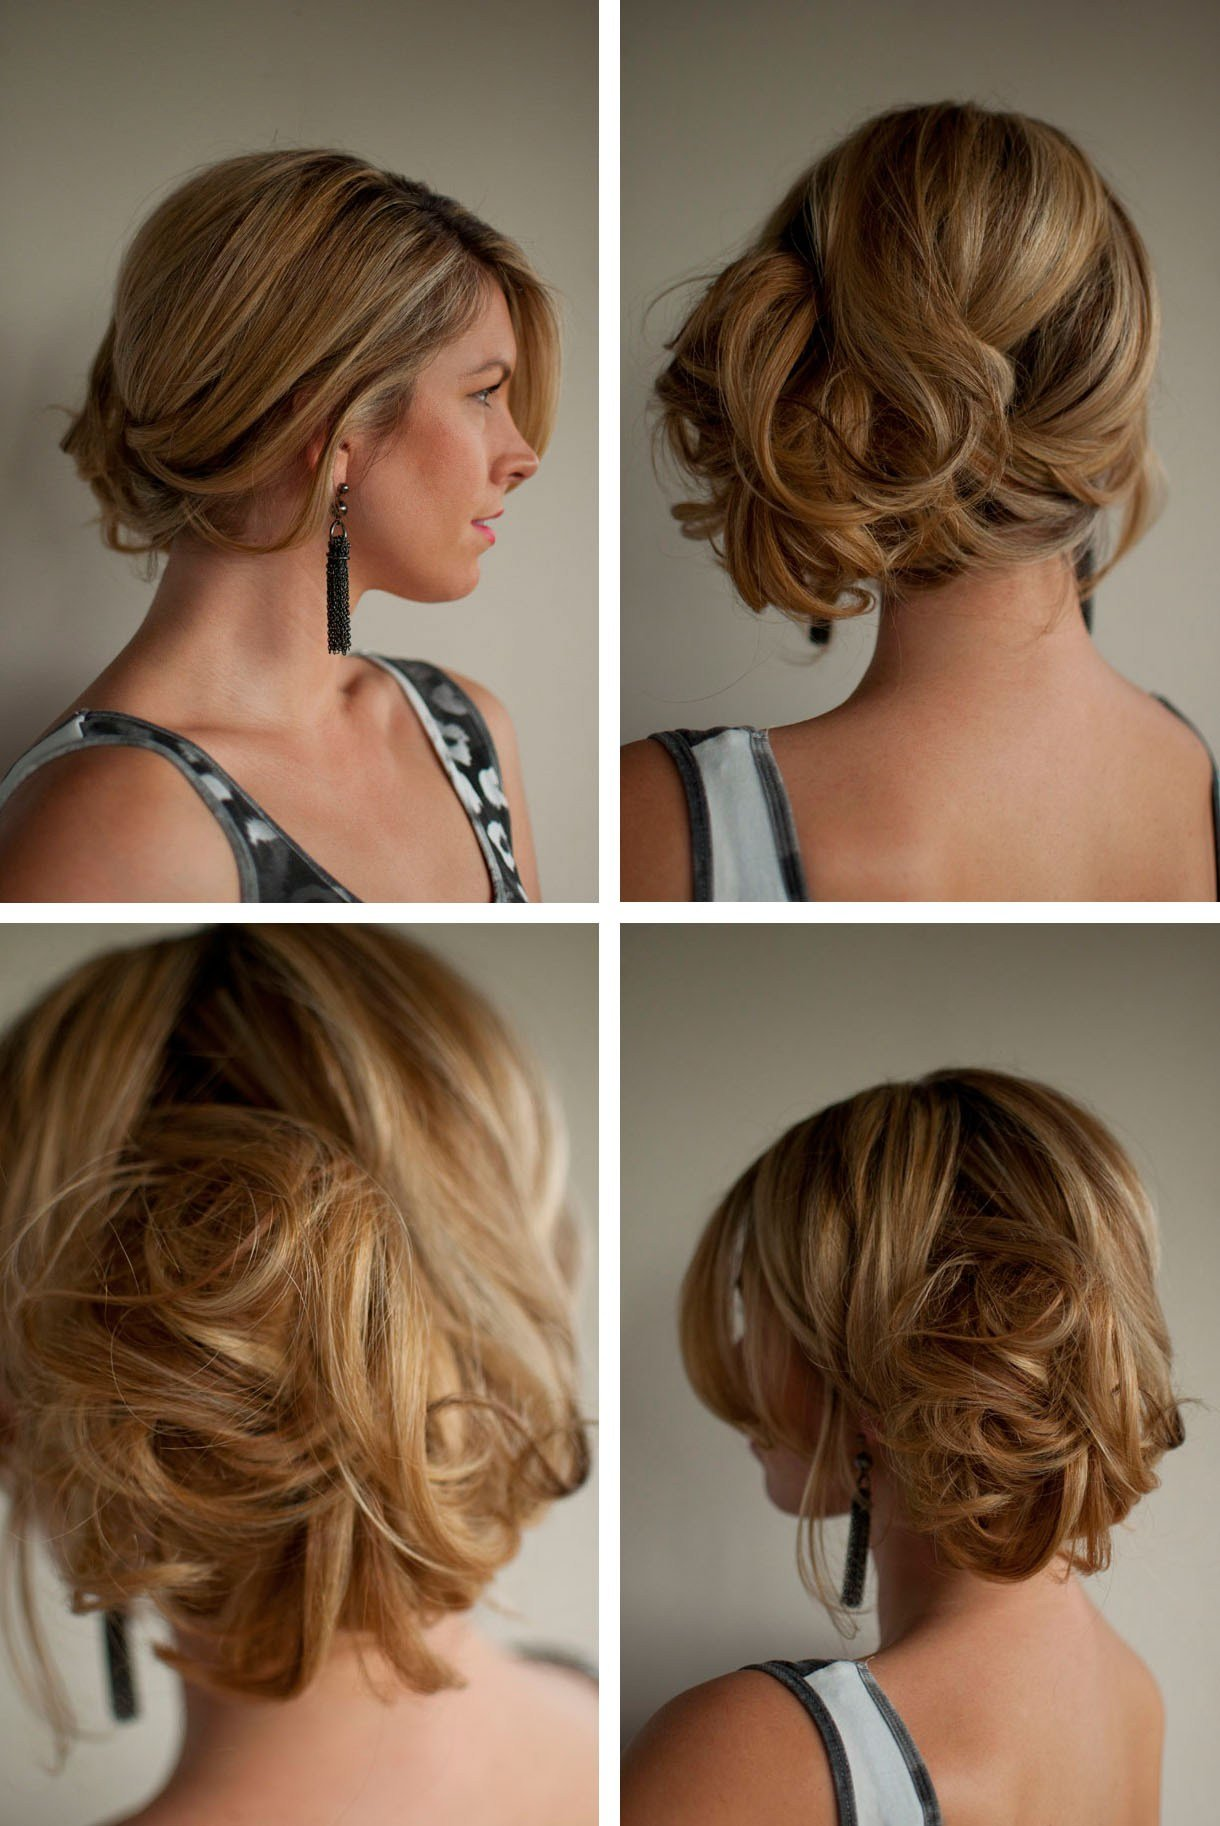 New Hair Romance Reader Question Hairstyles For A 1920S Ideas With Pictures